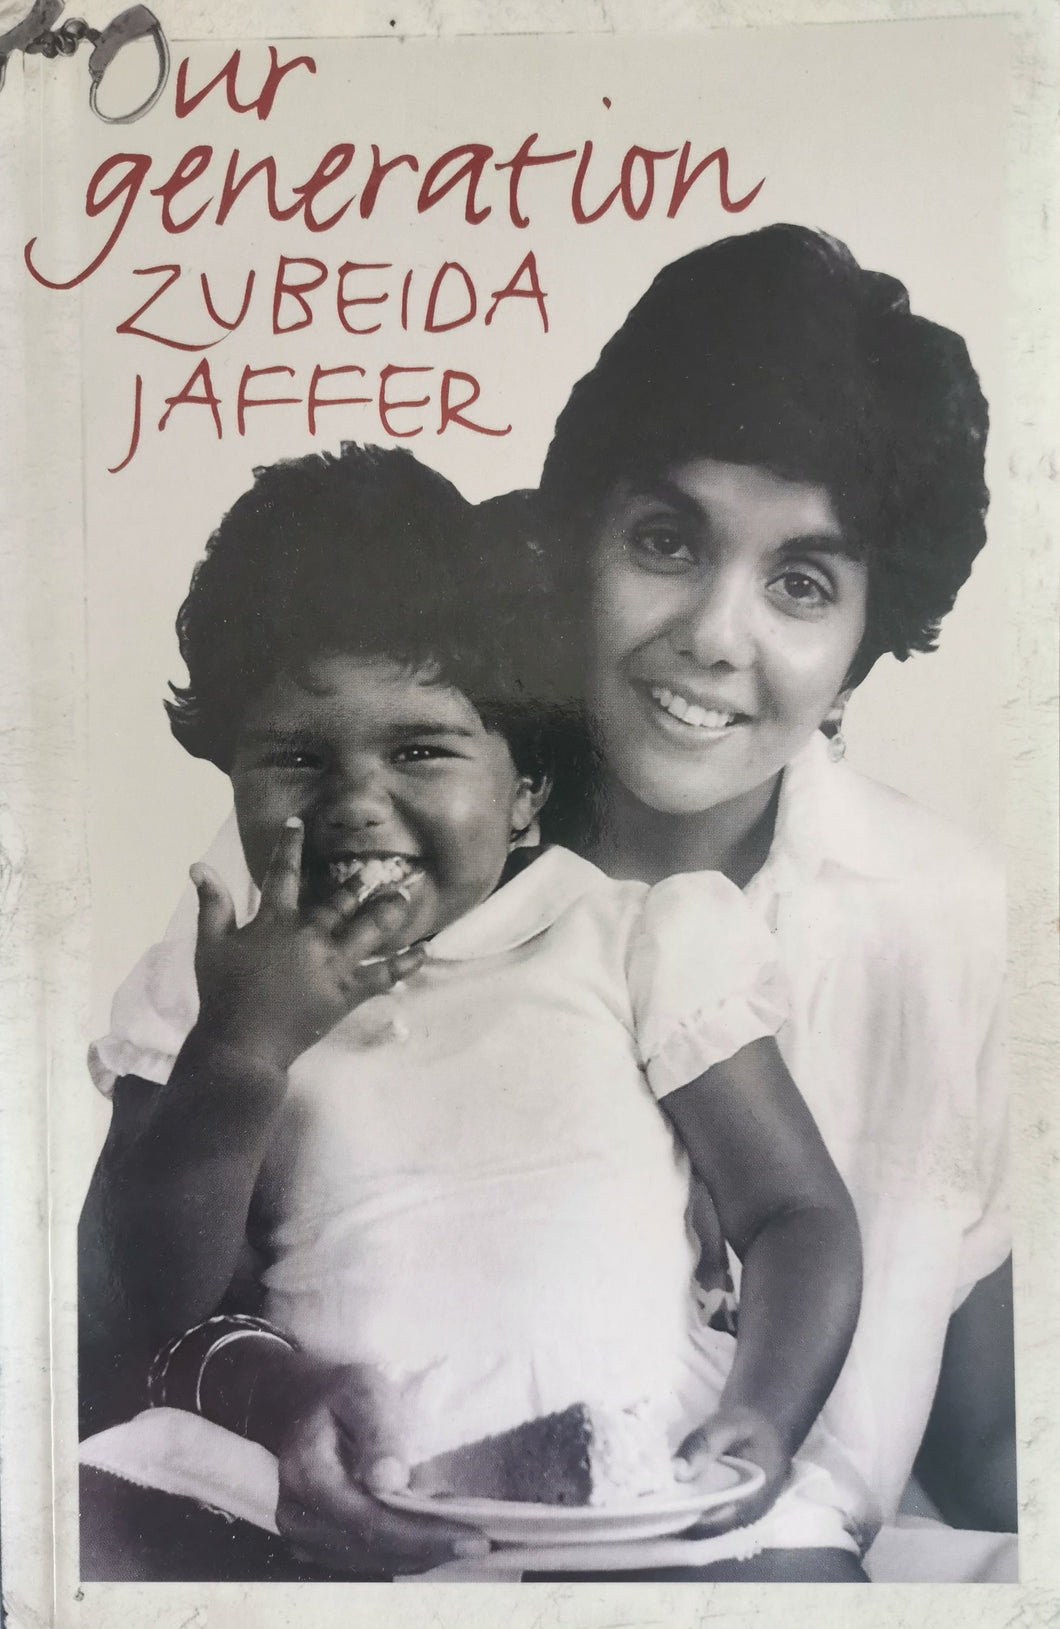 Our Generation - Zubeida Jaffer